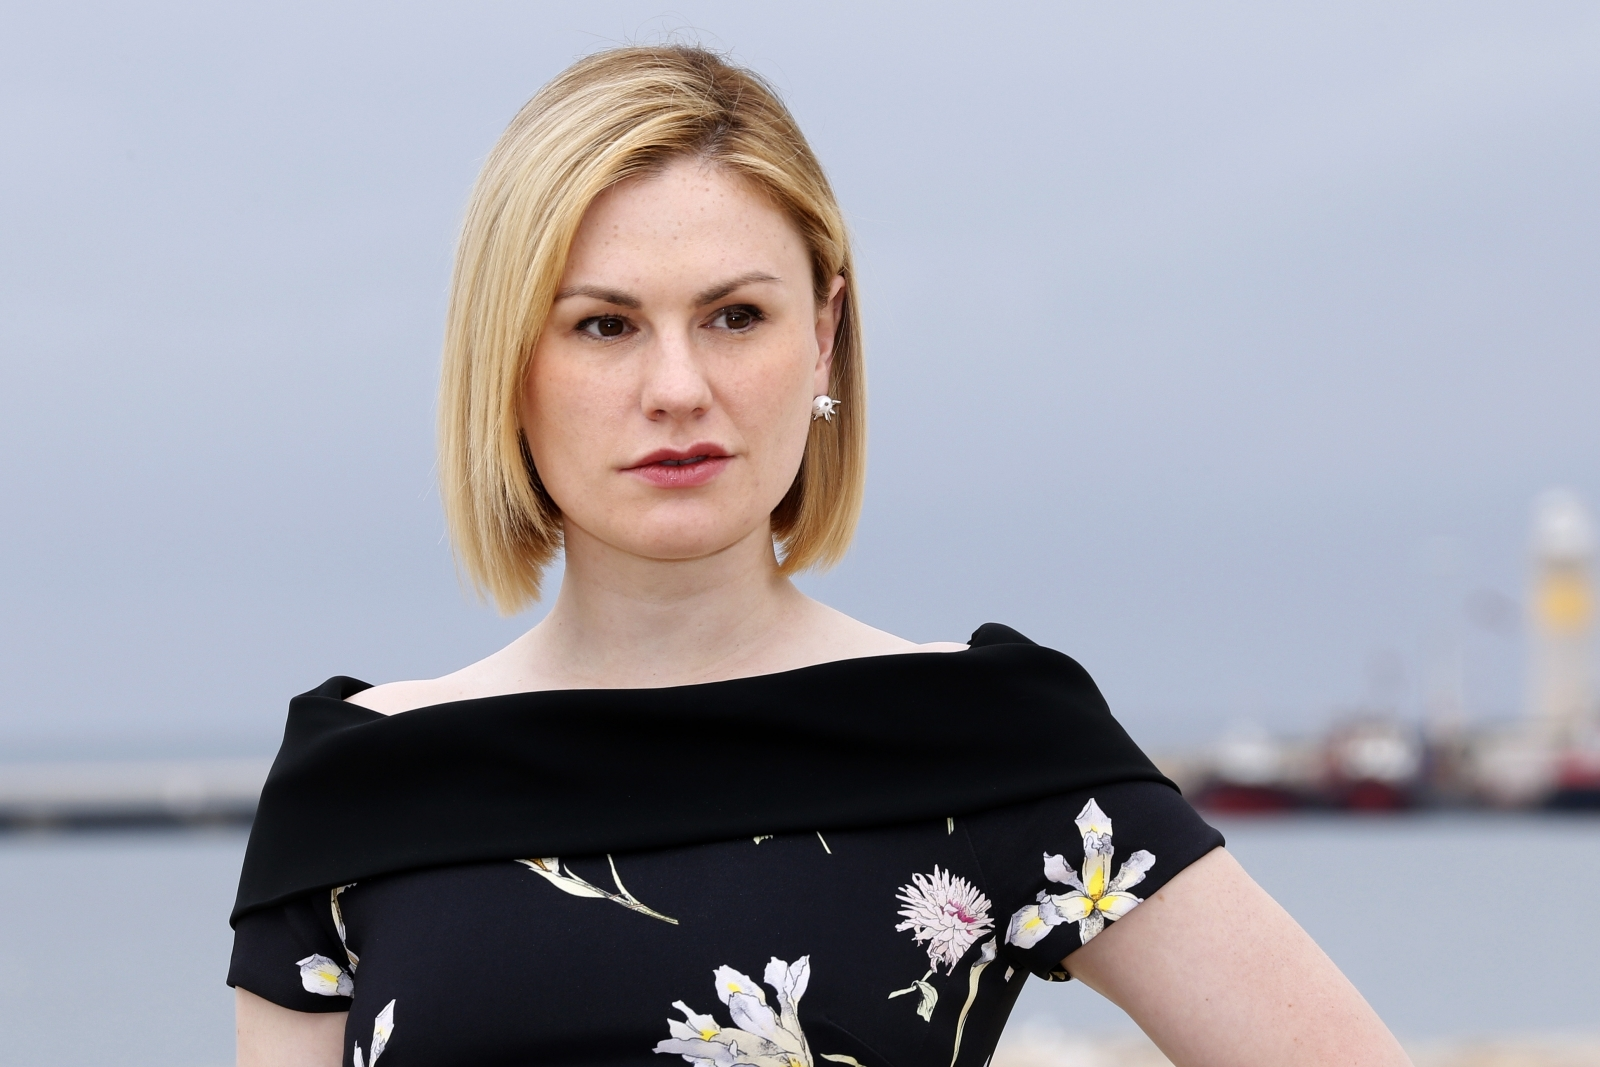 Anna Paquin 'claims' the breasts seen on BBC News At Ten